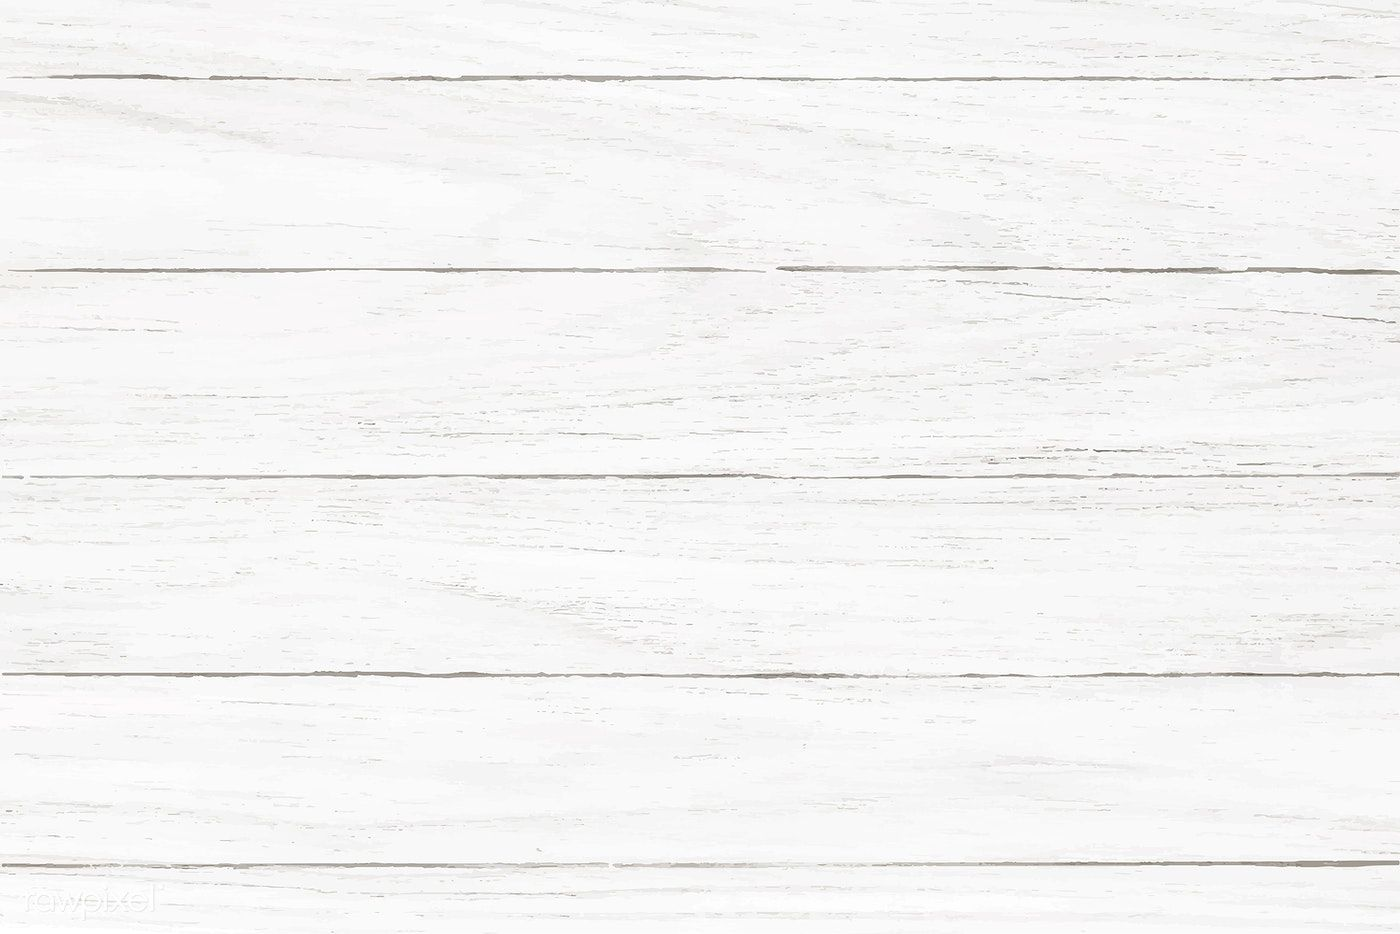 White Wood Textured Background Vector Free Image By Rawpixel Com Chim White Wood Texture Free Wood Texture Textured Background